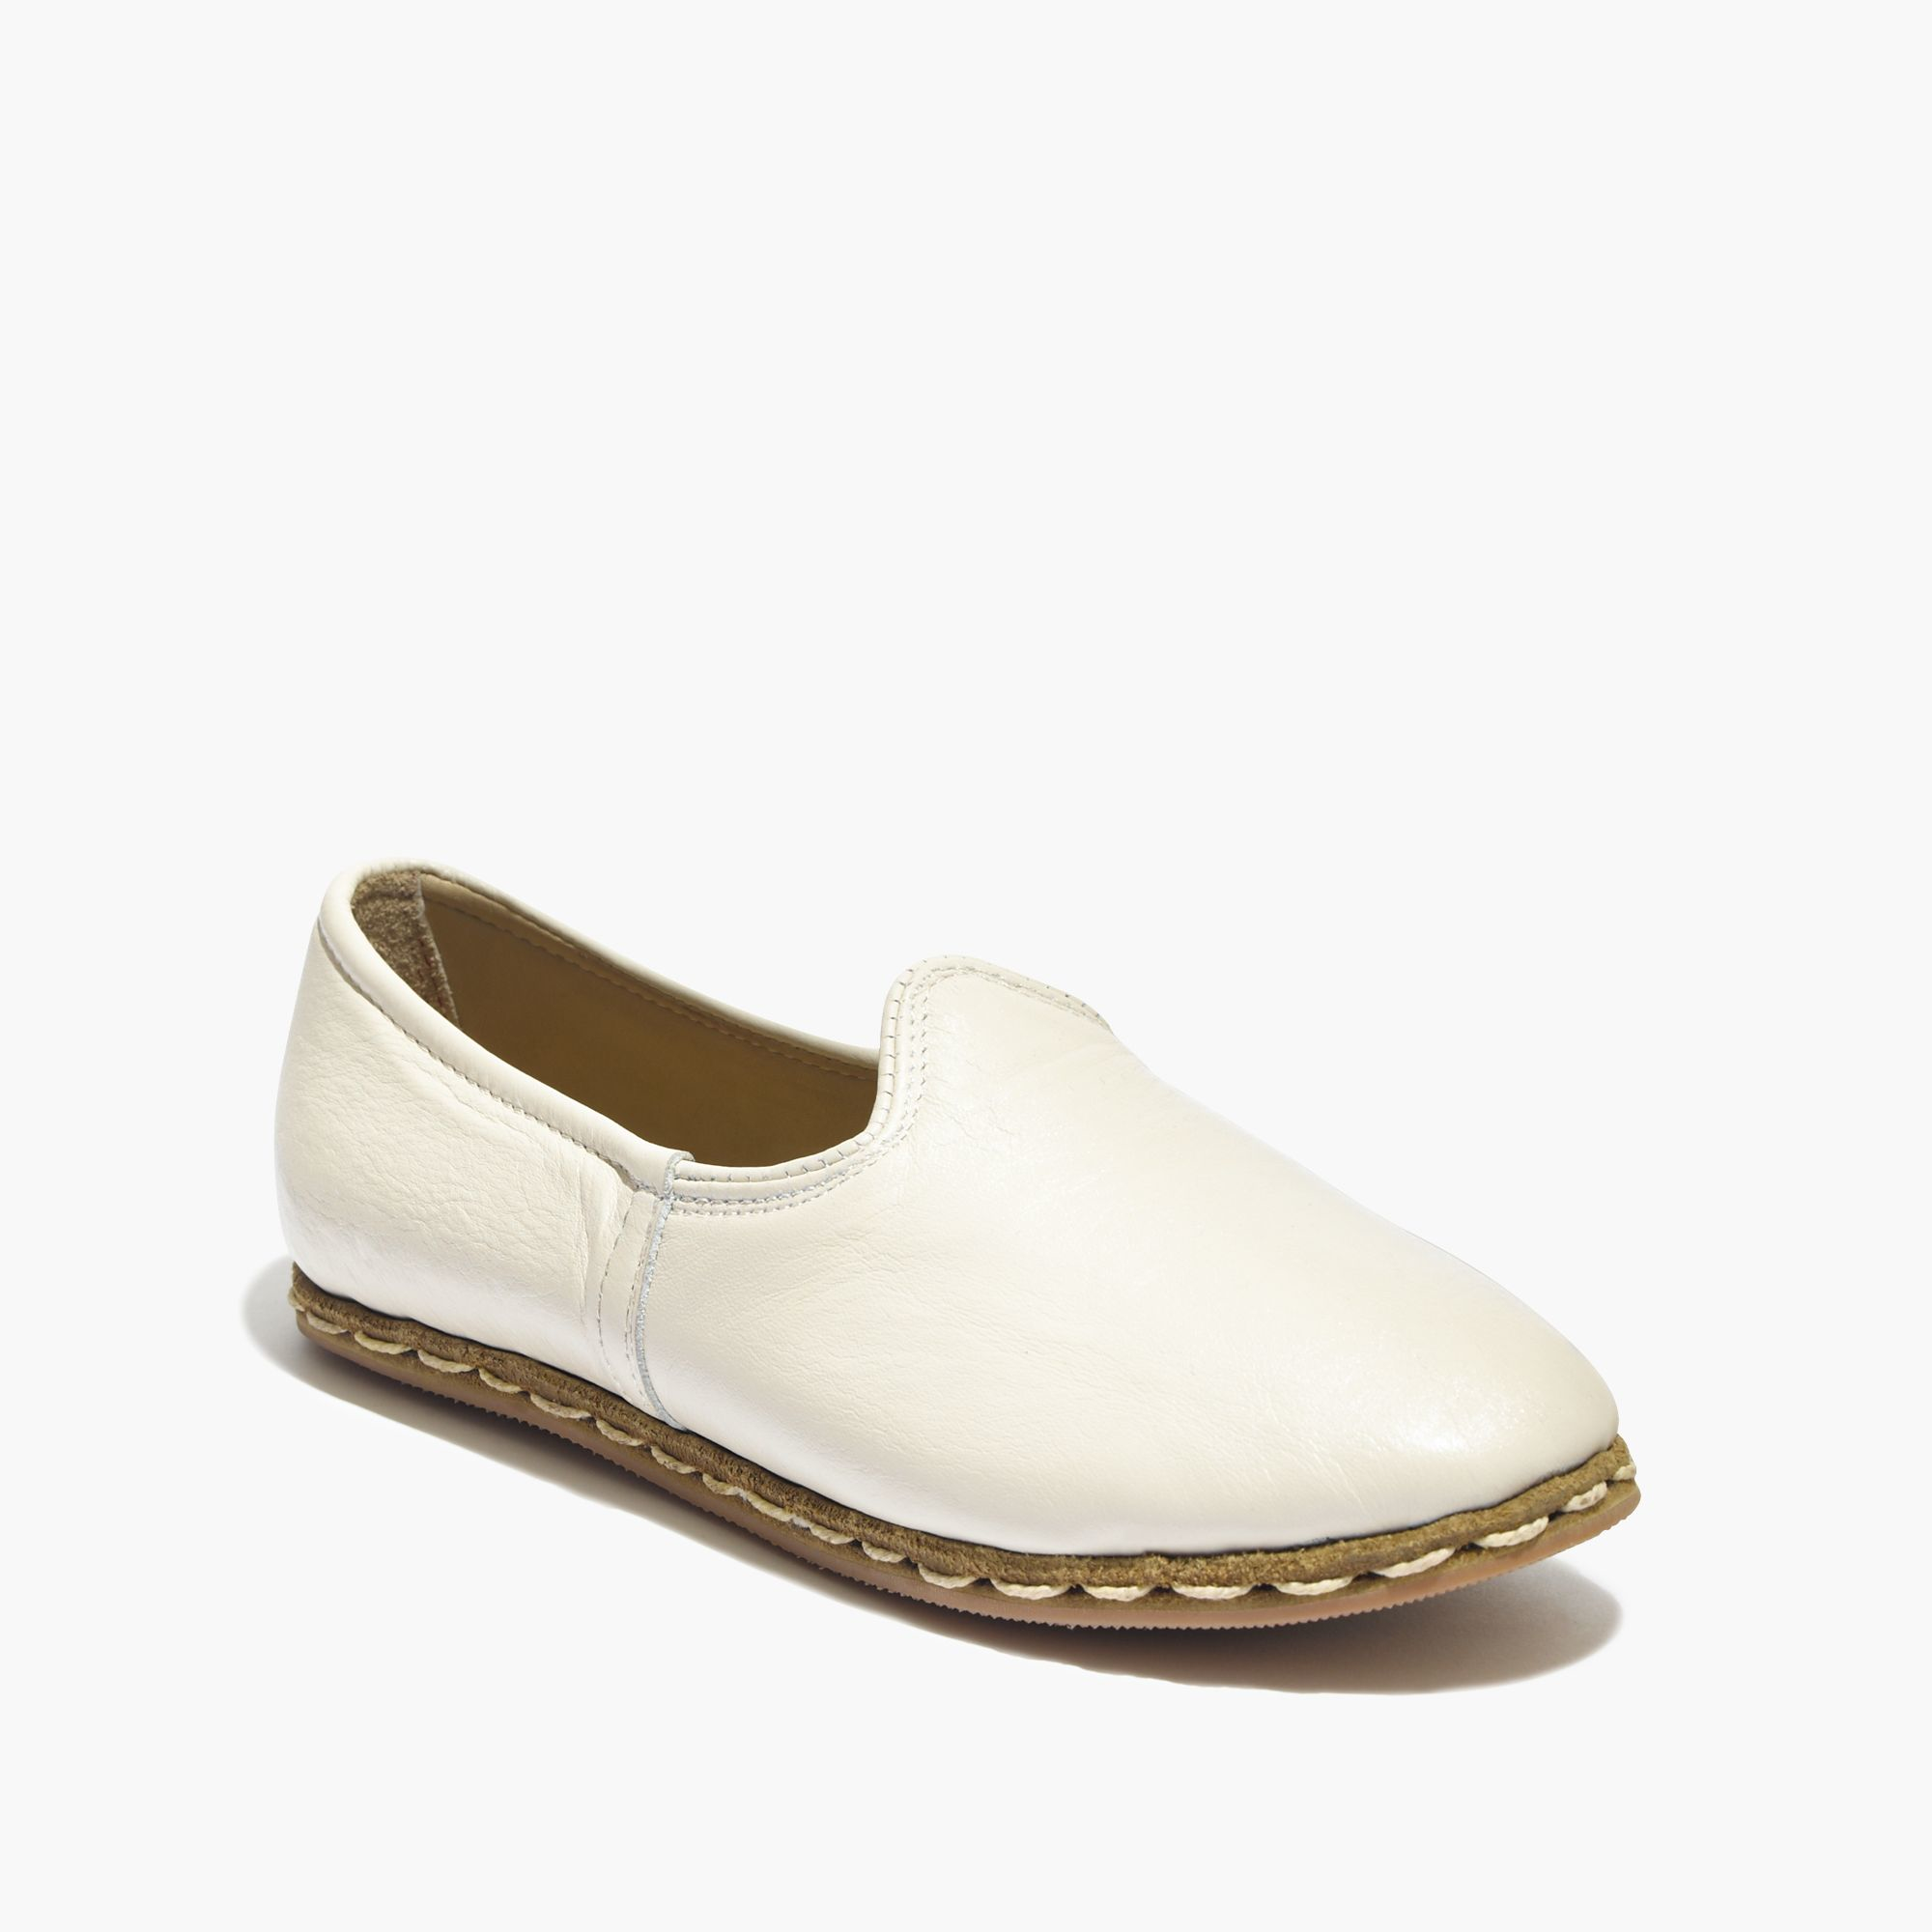 Who Sells Born Shoes In Canada